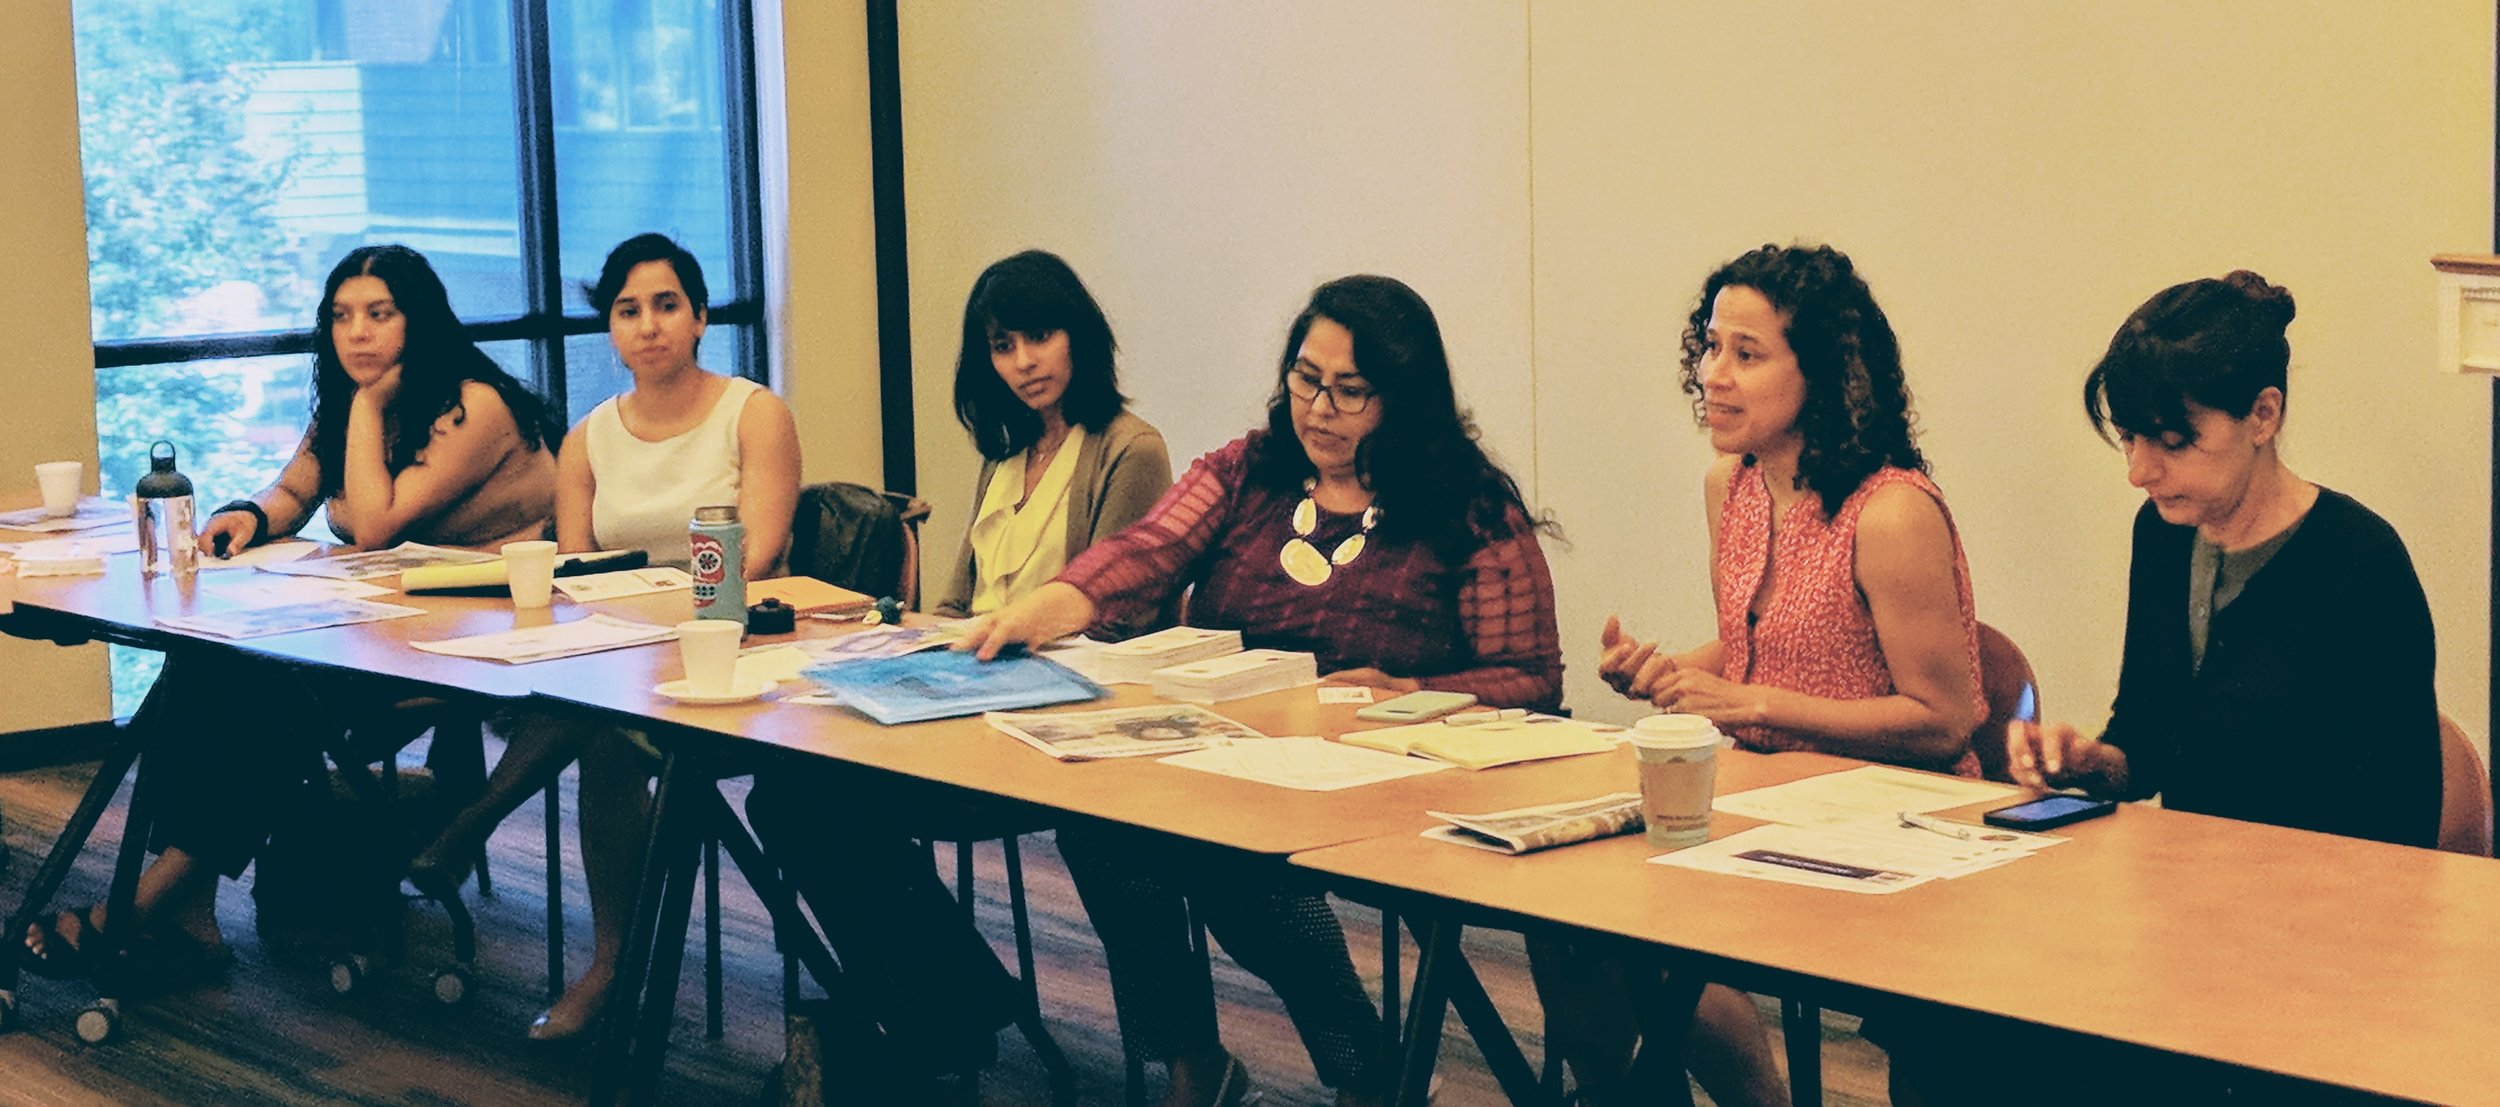 Leaders of the immigrant consortium addressing LaSup attendees, July 18